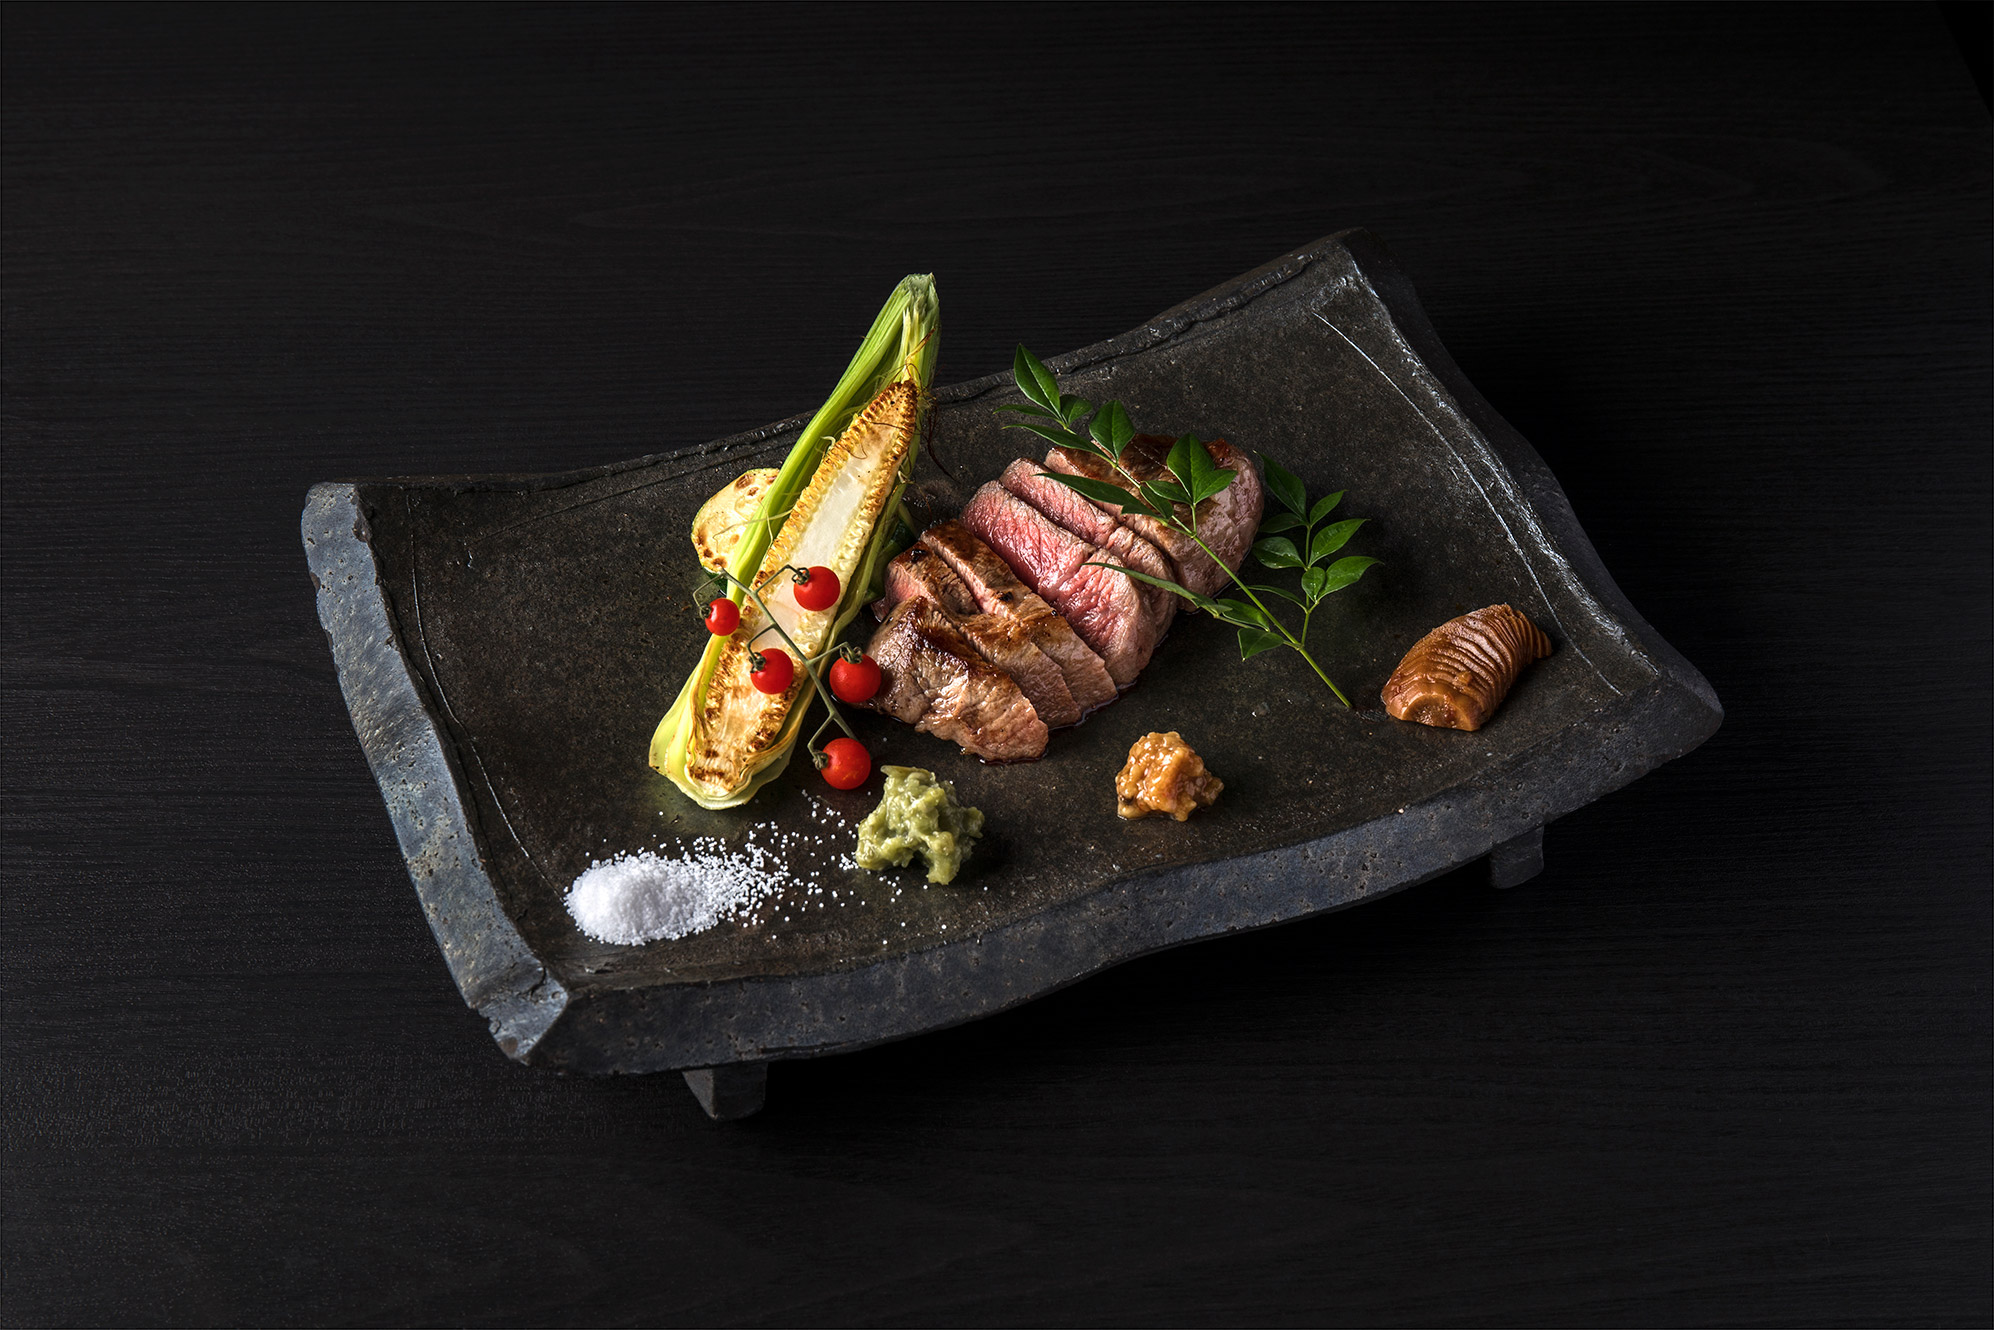 Specialized restaurant of Wagyu - GURURI